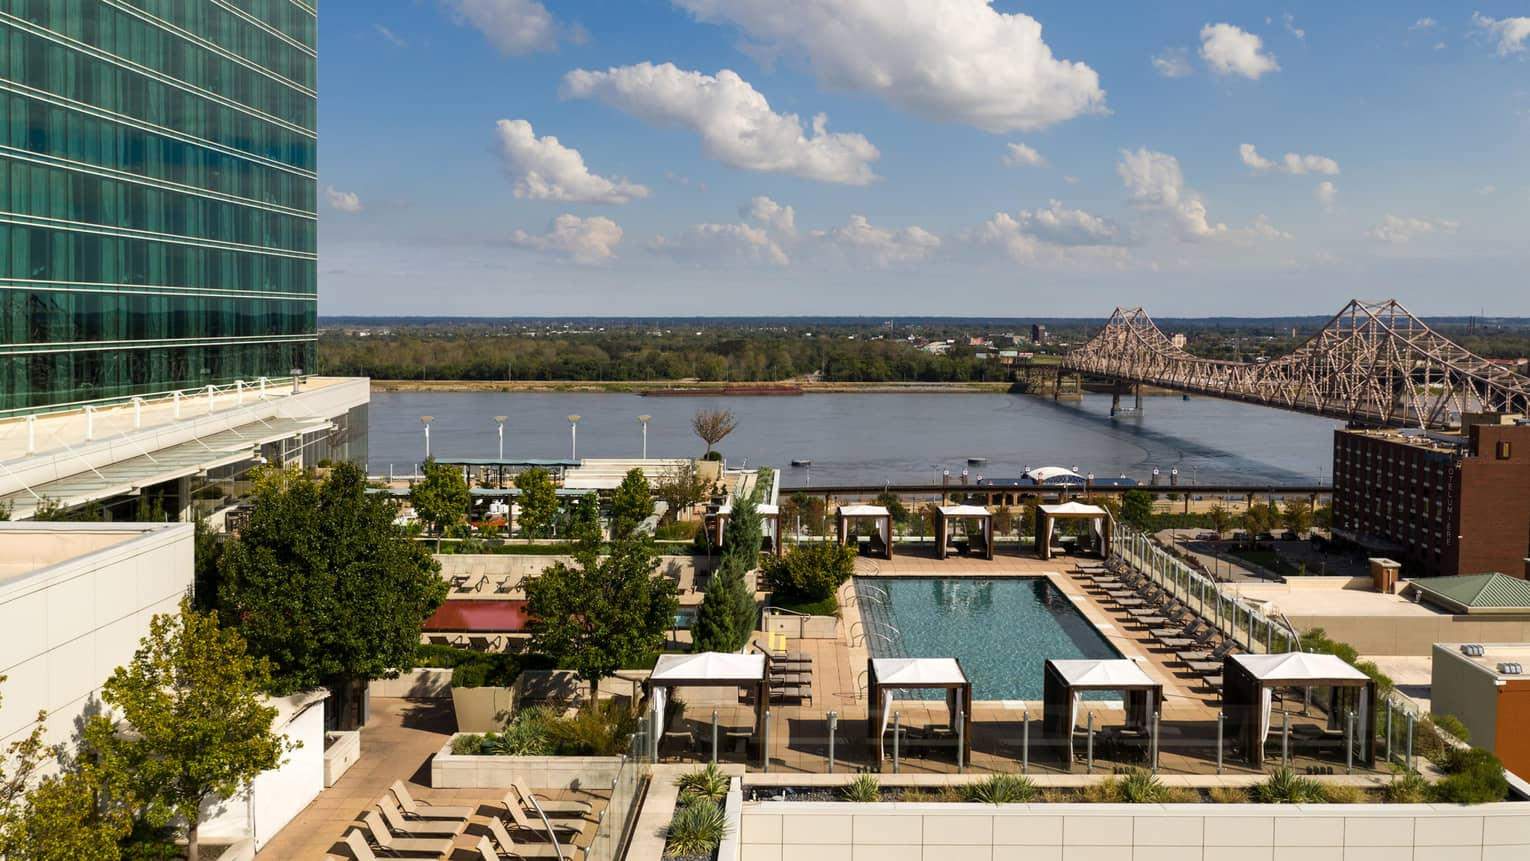 An aerial view of four seasons rooftop pool at four seasons saint louis